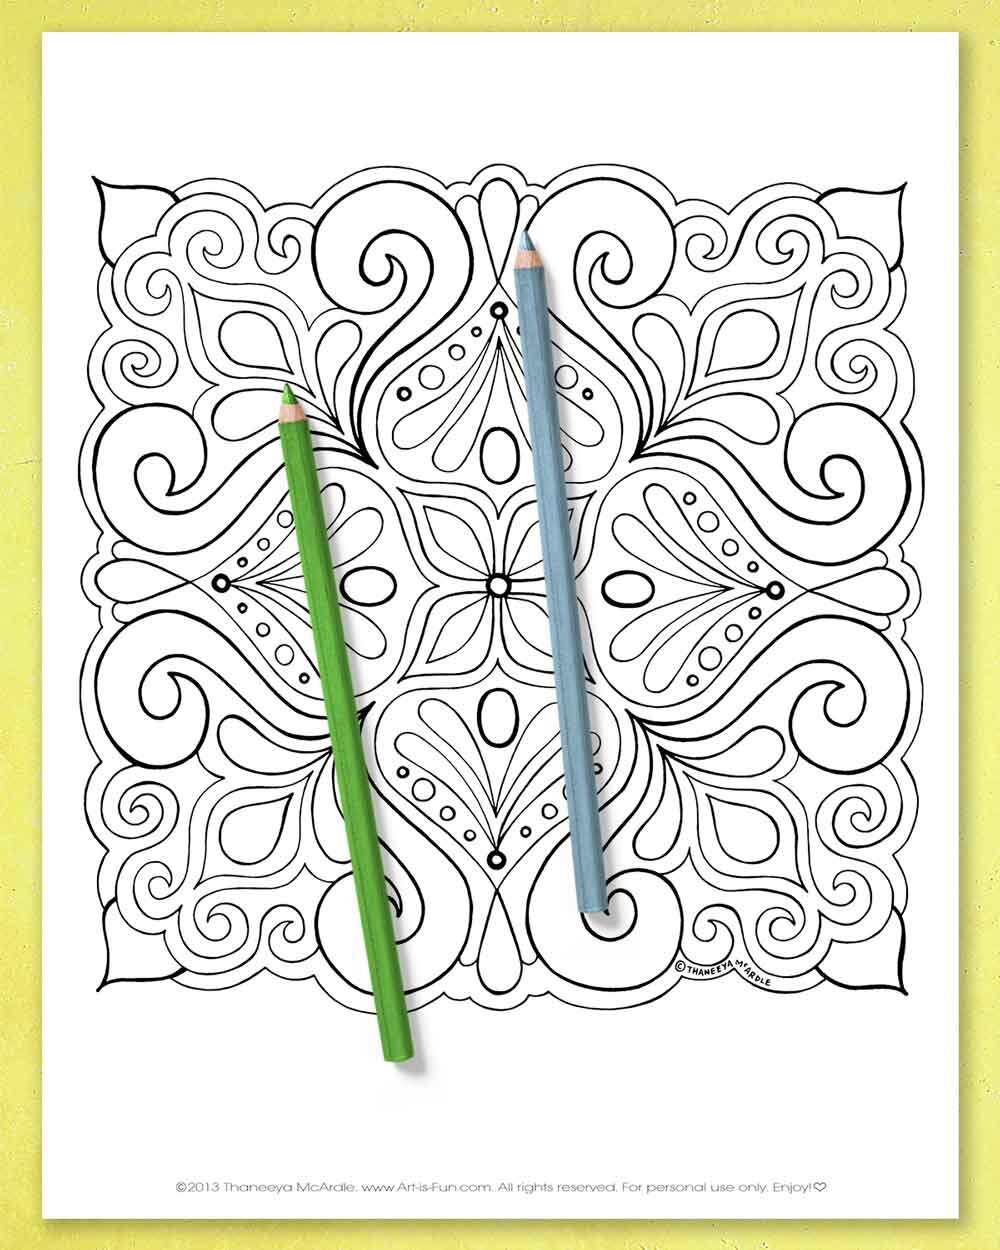 Abstract Coloring Pages Printable E Book Of Groovy Abstract Designs For You To Color Art Is Fun